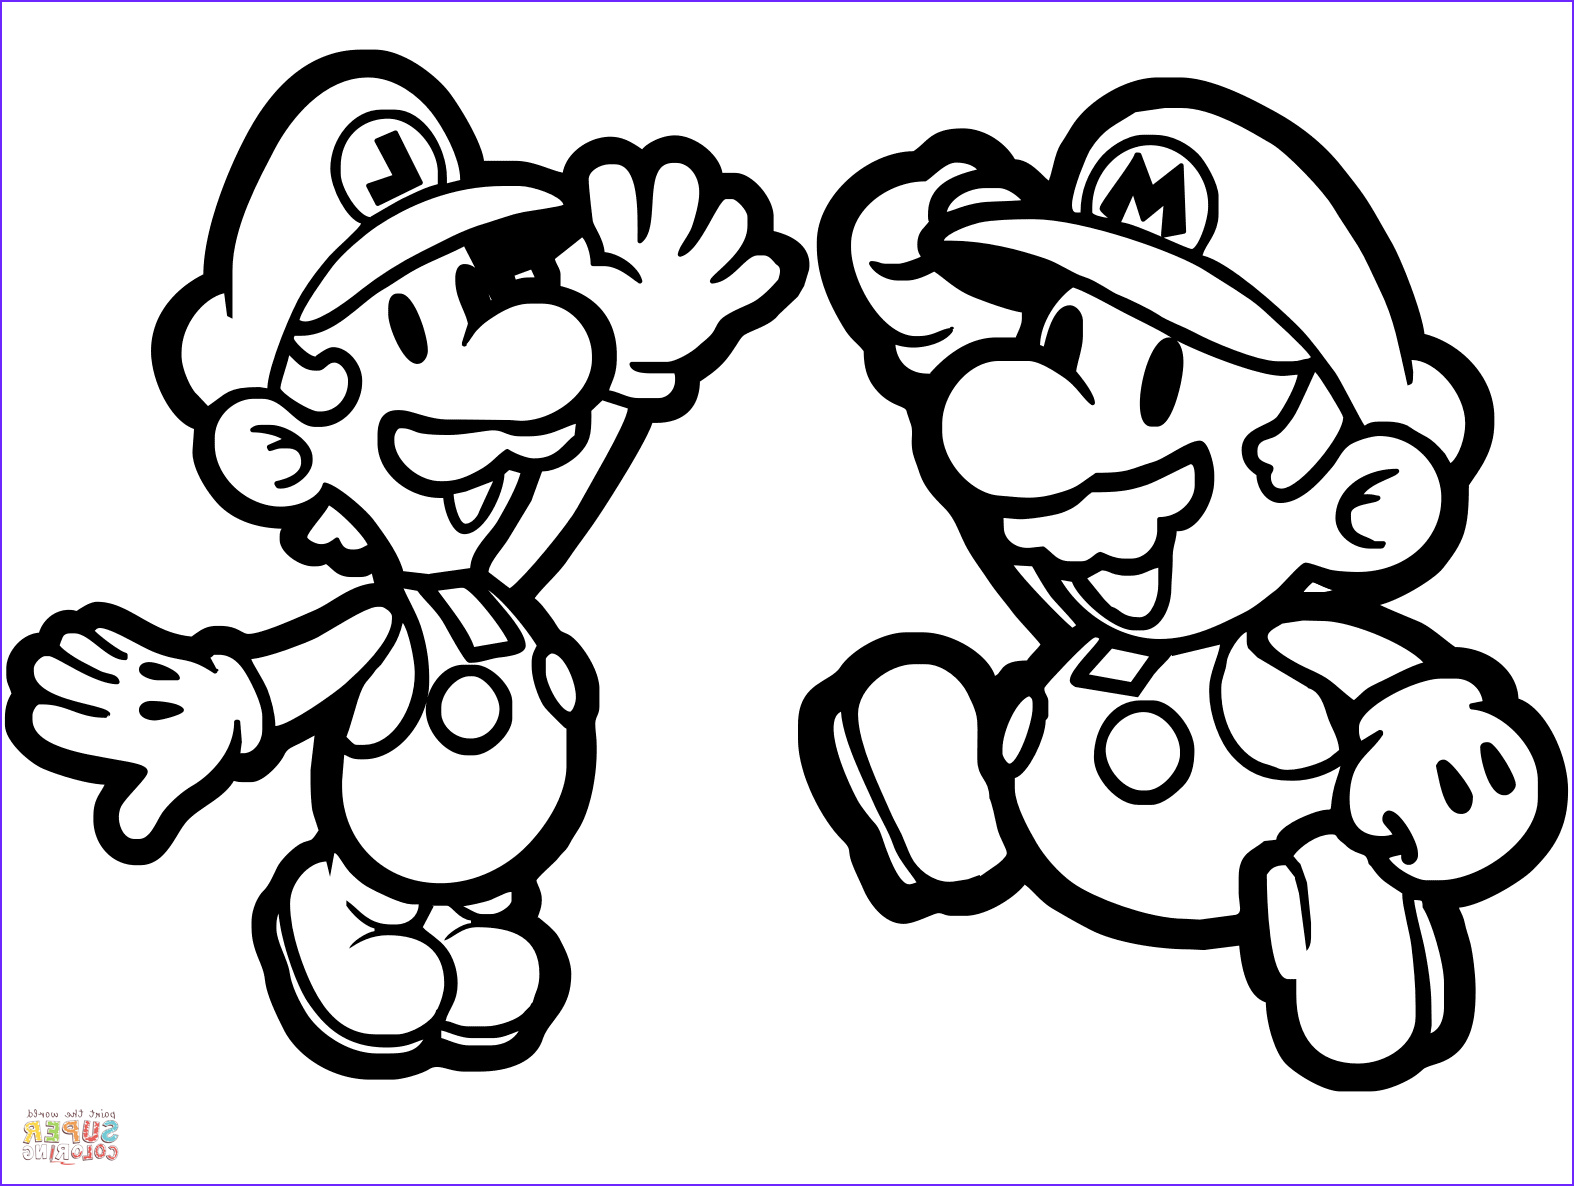 Mario and Luigi Coloring Page Beautiful Images Paper Mario and Luigi Coloring Page